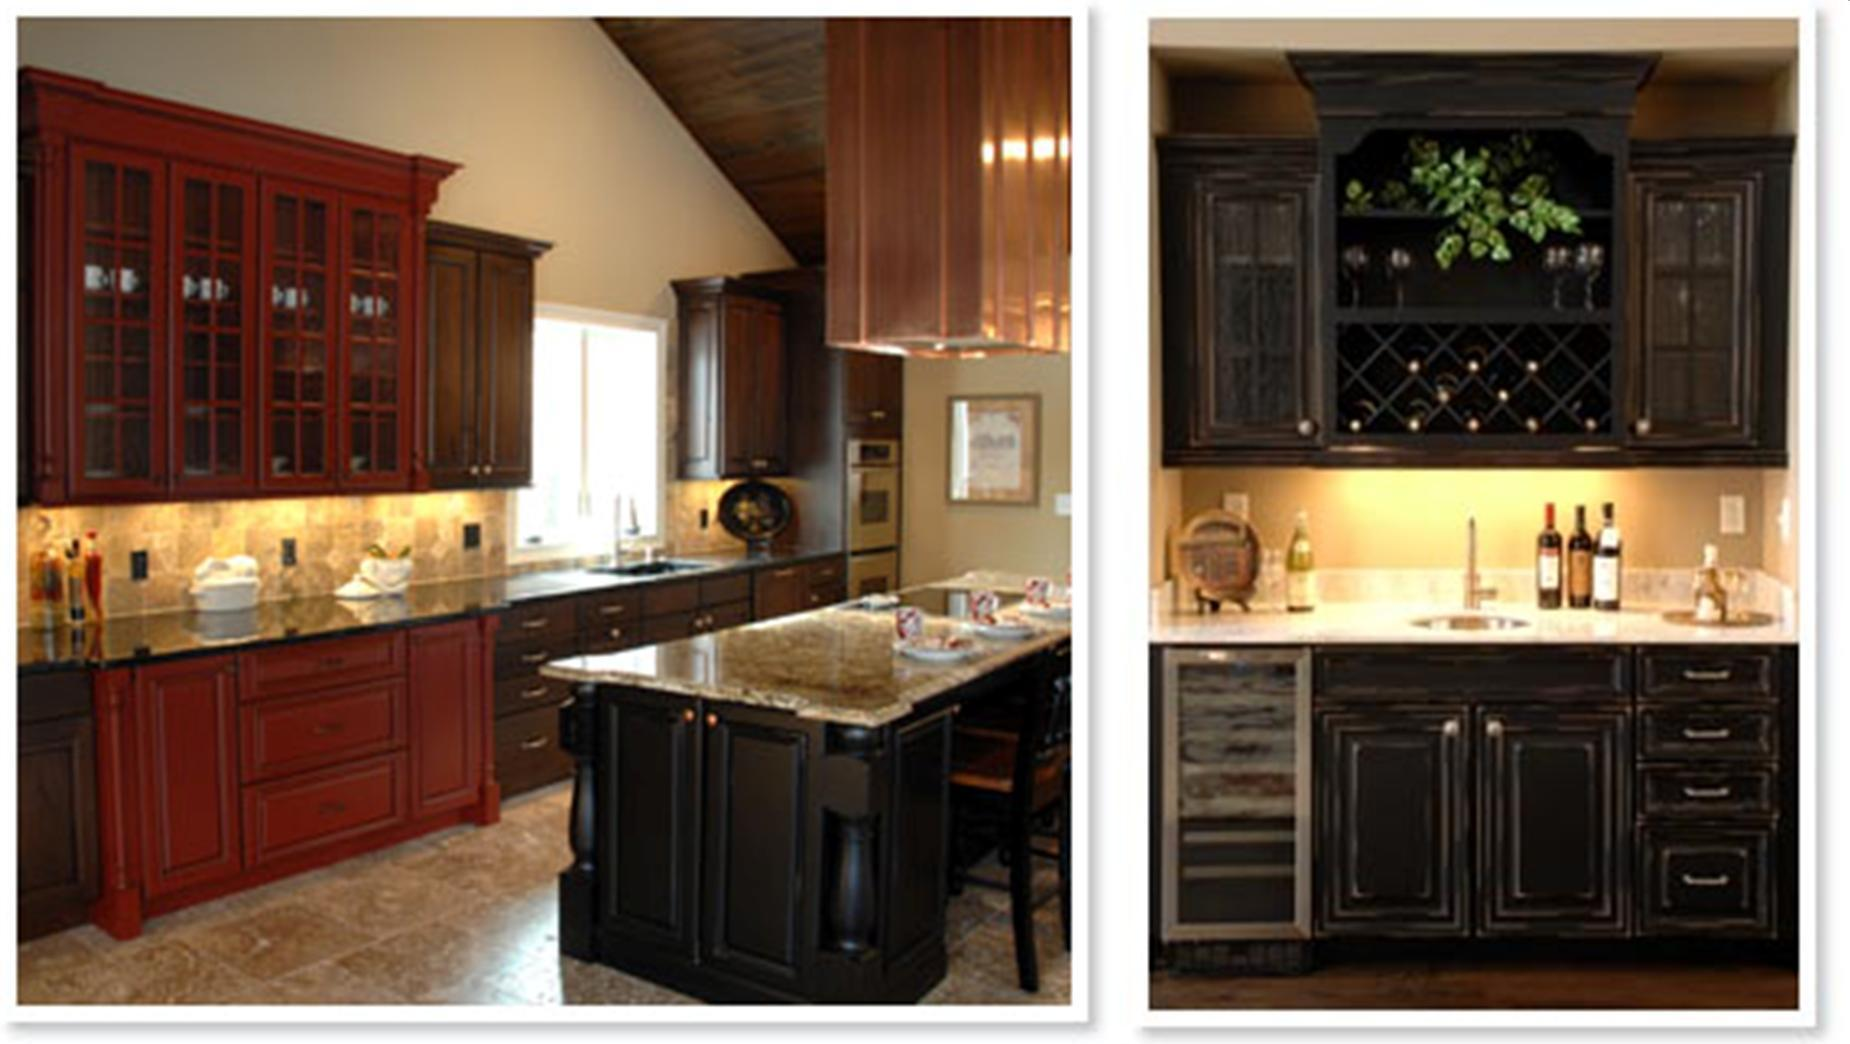 Kitchen Cabinets with Black